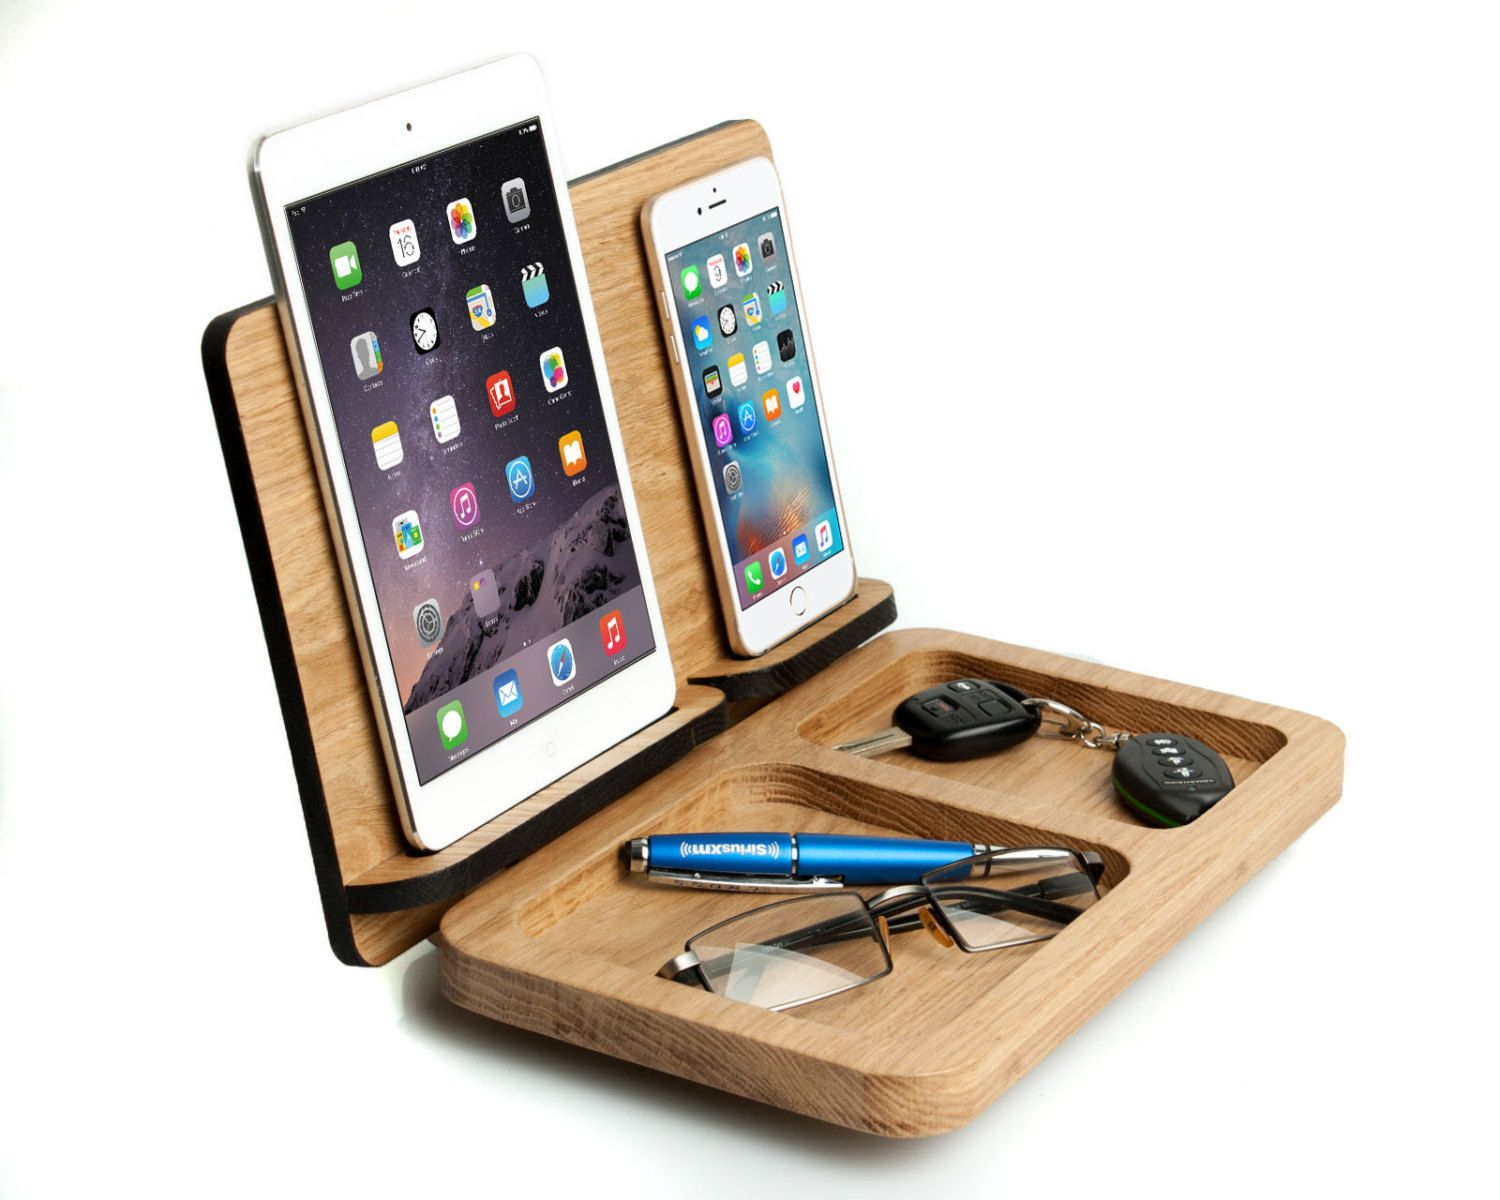 mens gift ipad mini iphone 7 docking station personalized for him husband gift cell wooden. Black Bedroom Furniture Sets. Home Design Ideas